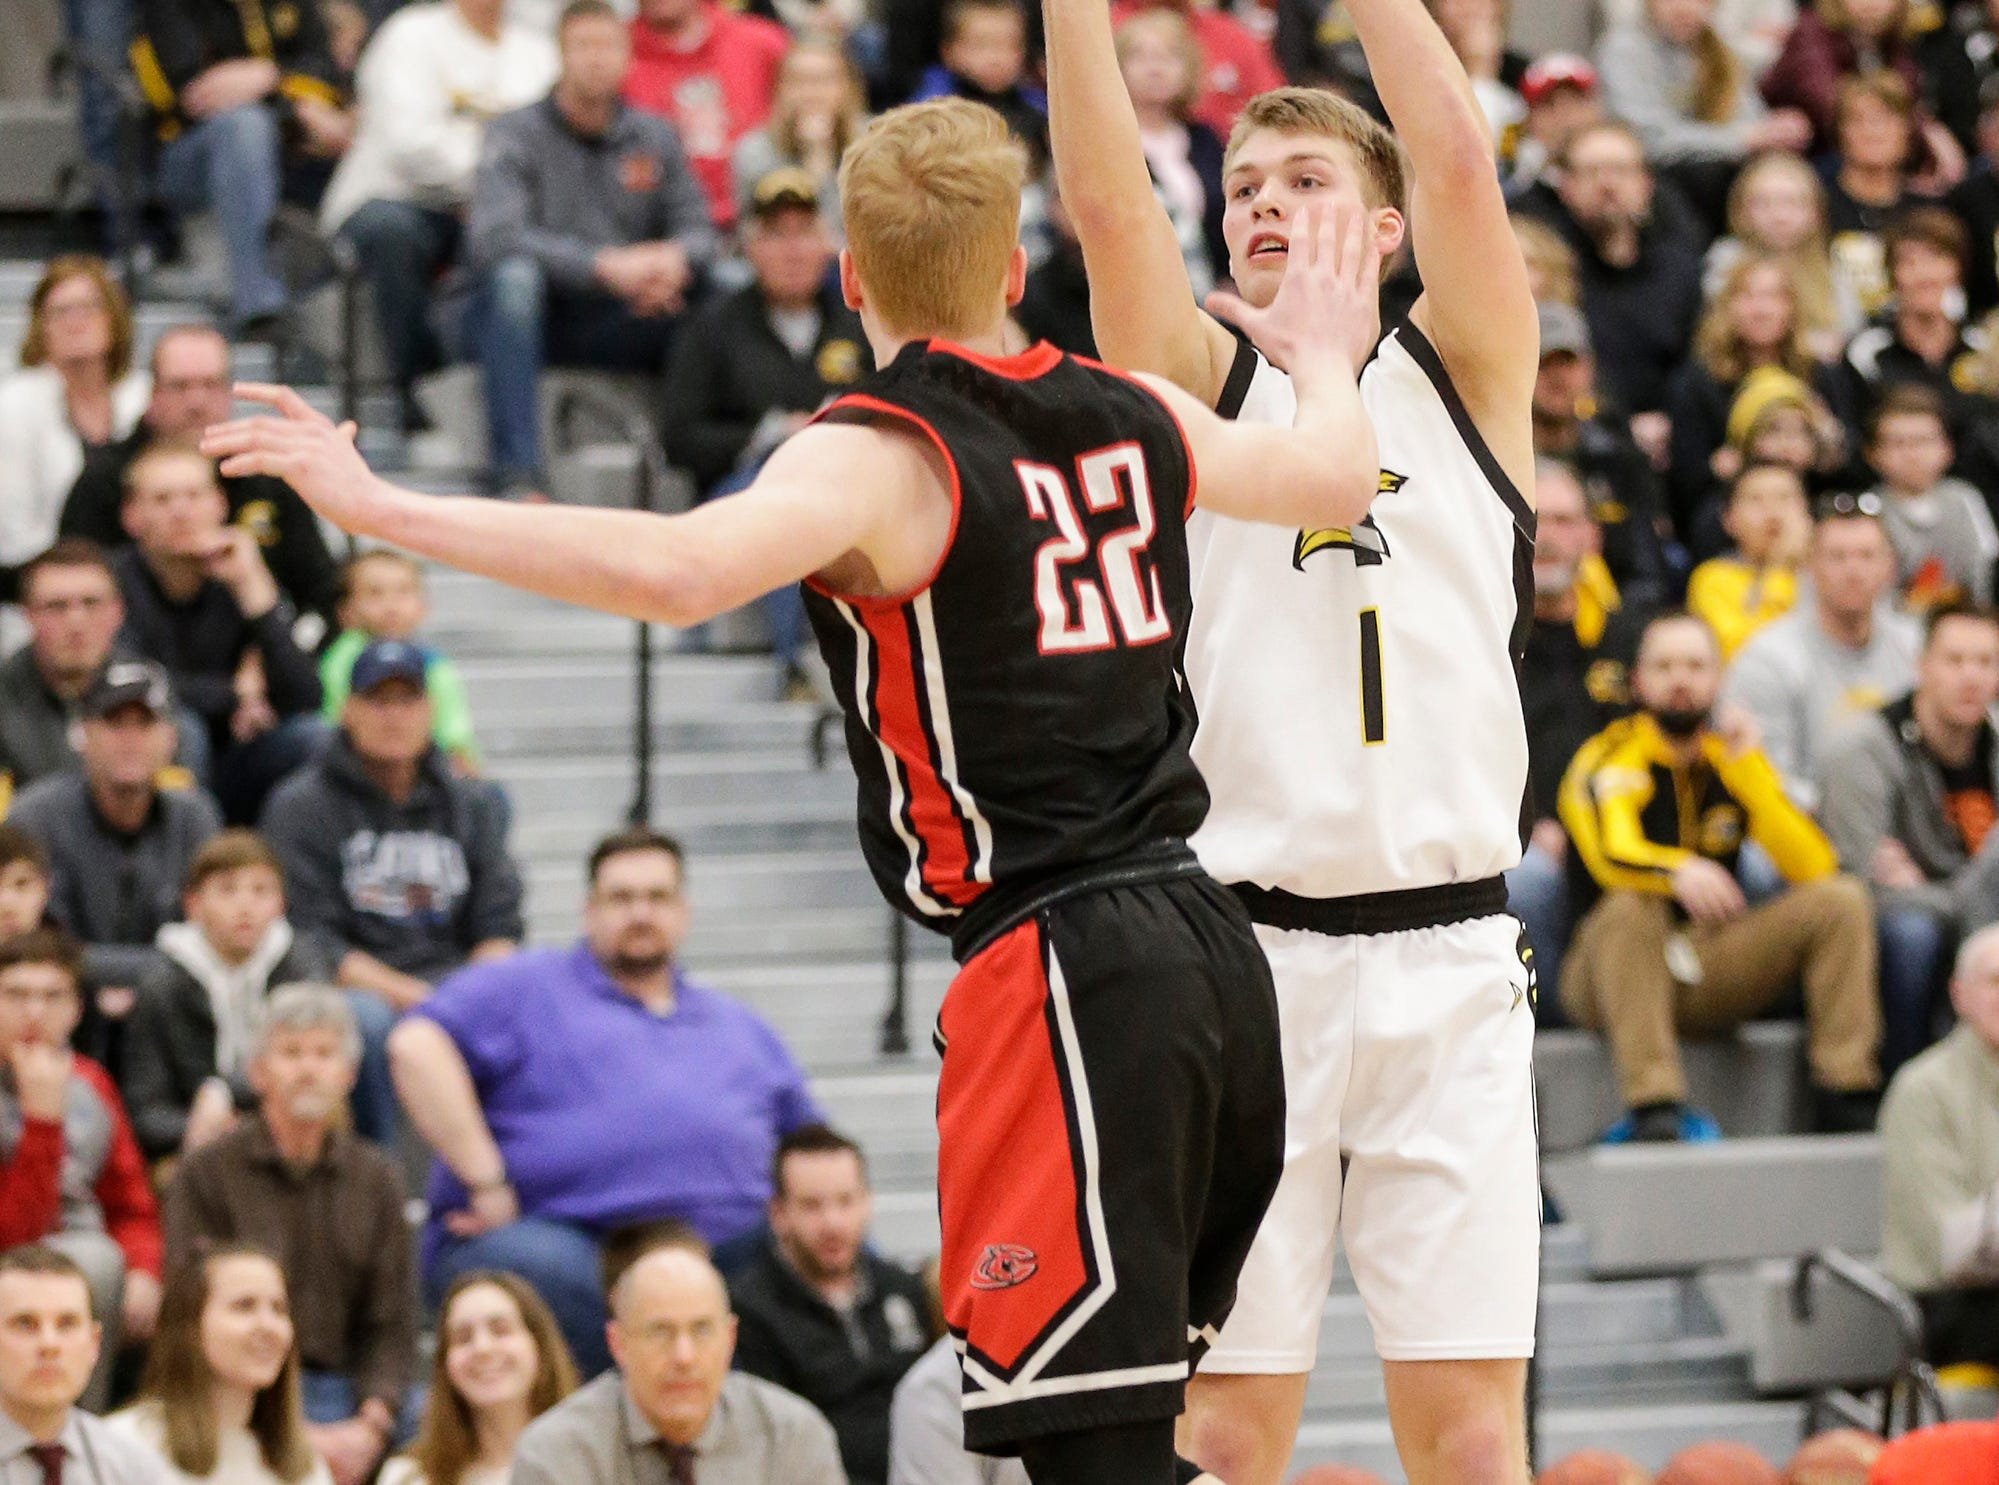 Waupun High School boys basketball's Marcus Domask (1) throws a three pointer against Columbus High School's Trent Casper (22) during their WIAA division 3 sectional semi-final game Thursday, March 7, 2019 in Beaver Dam, Wis. Waupun won the game 79-36. Doug Raflik/USA TODAY NETWORK-Wisconsin